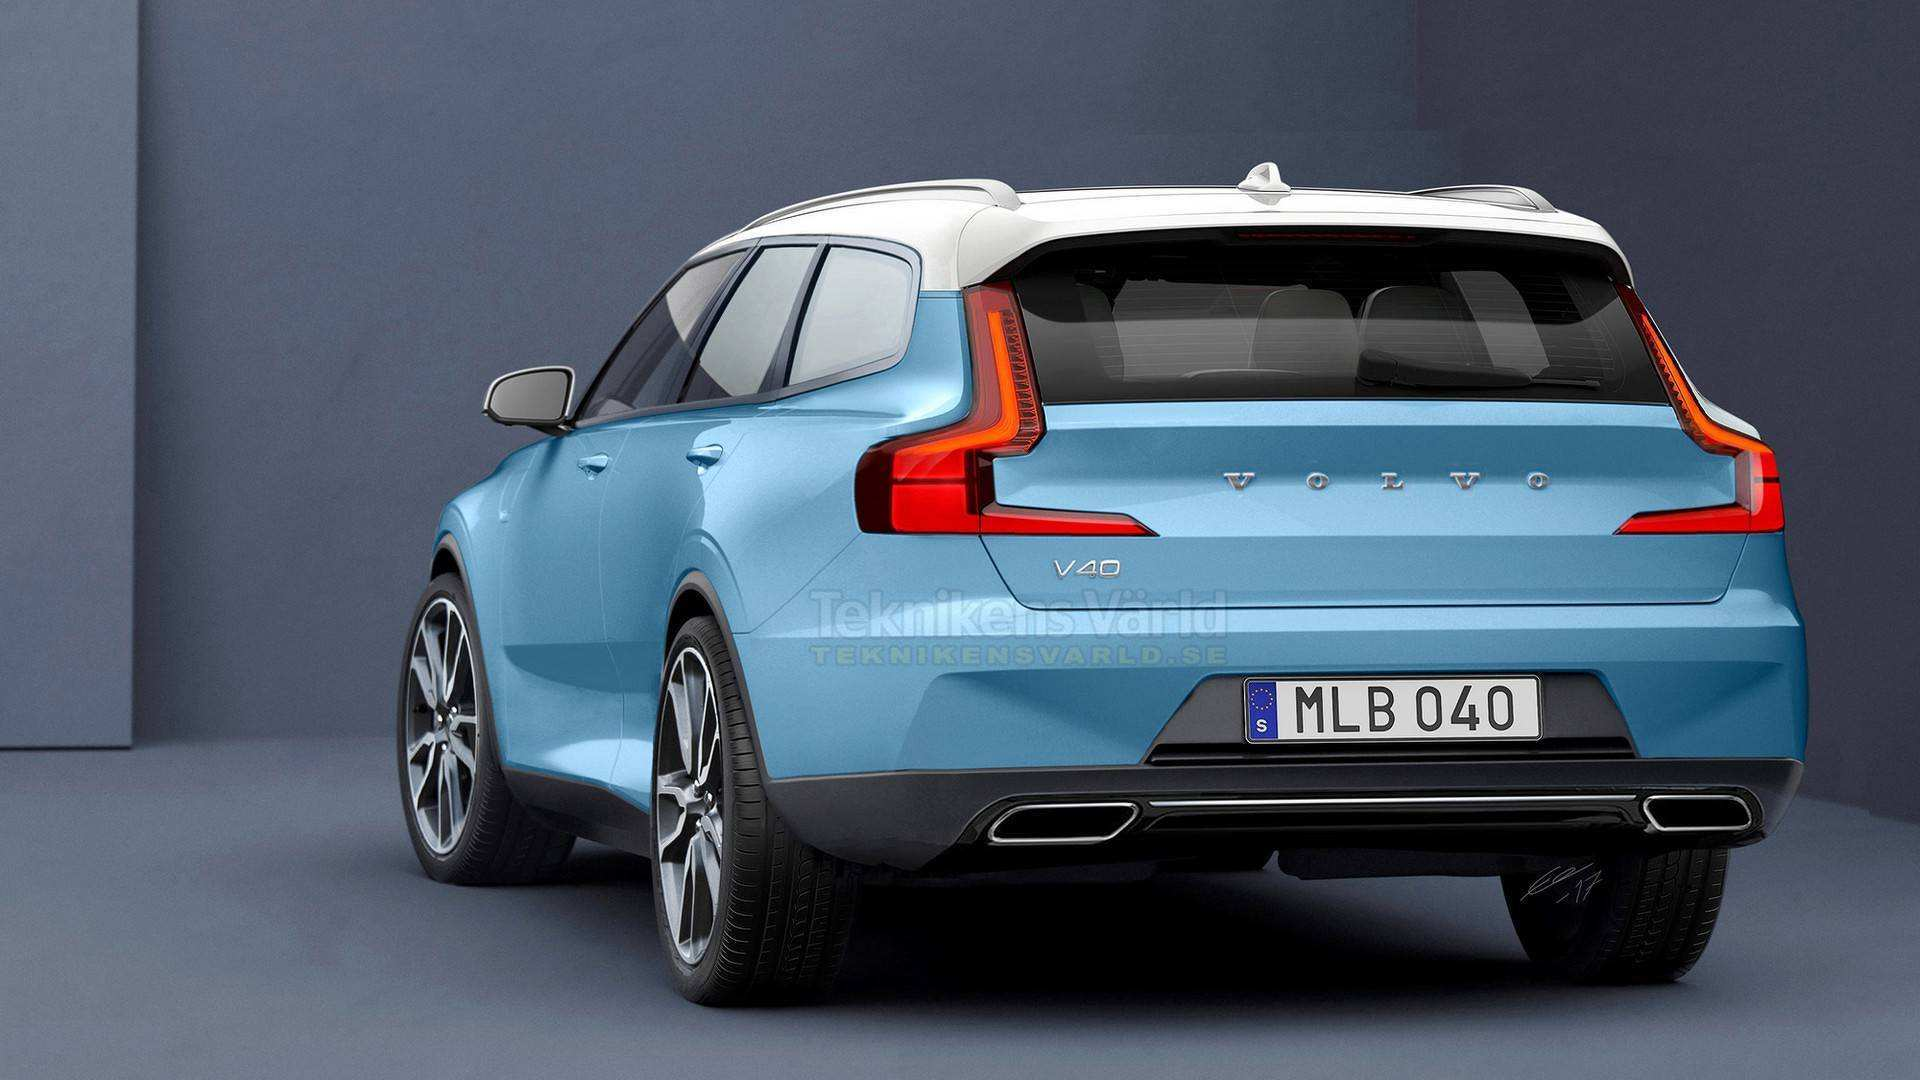 32 Concept of Volvo V40 2020 Usa Release with Volvo V40 2020 Usa